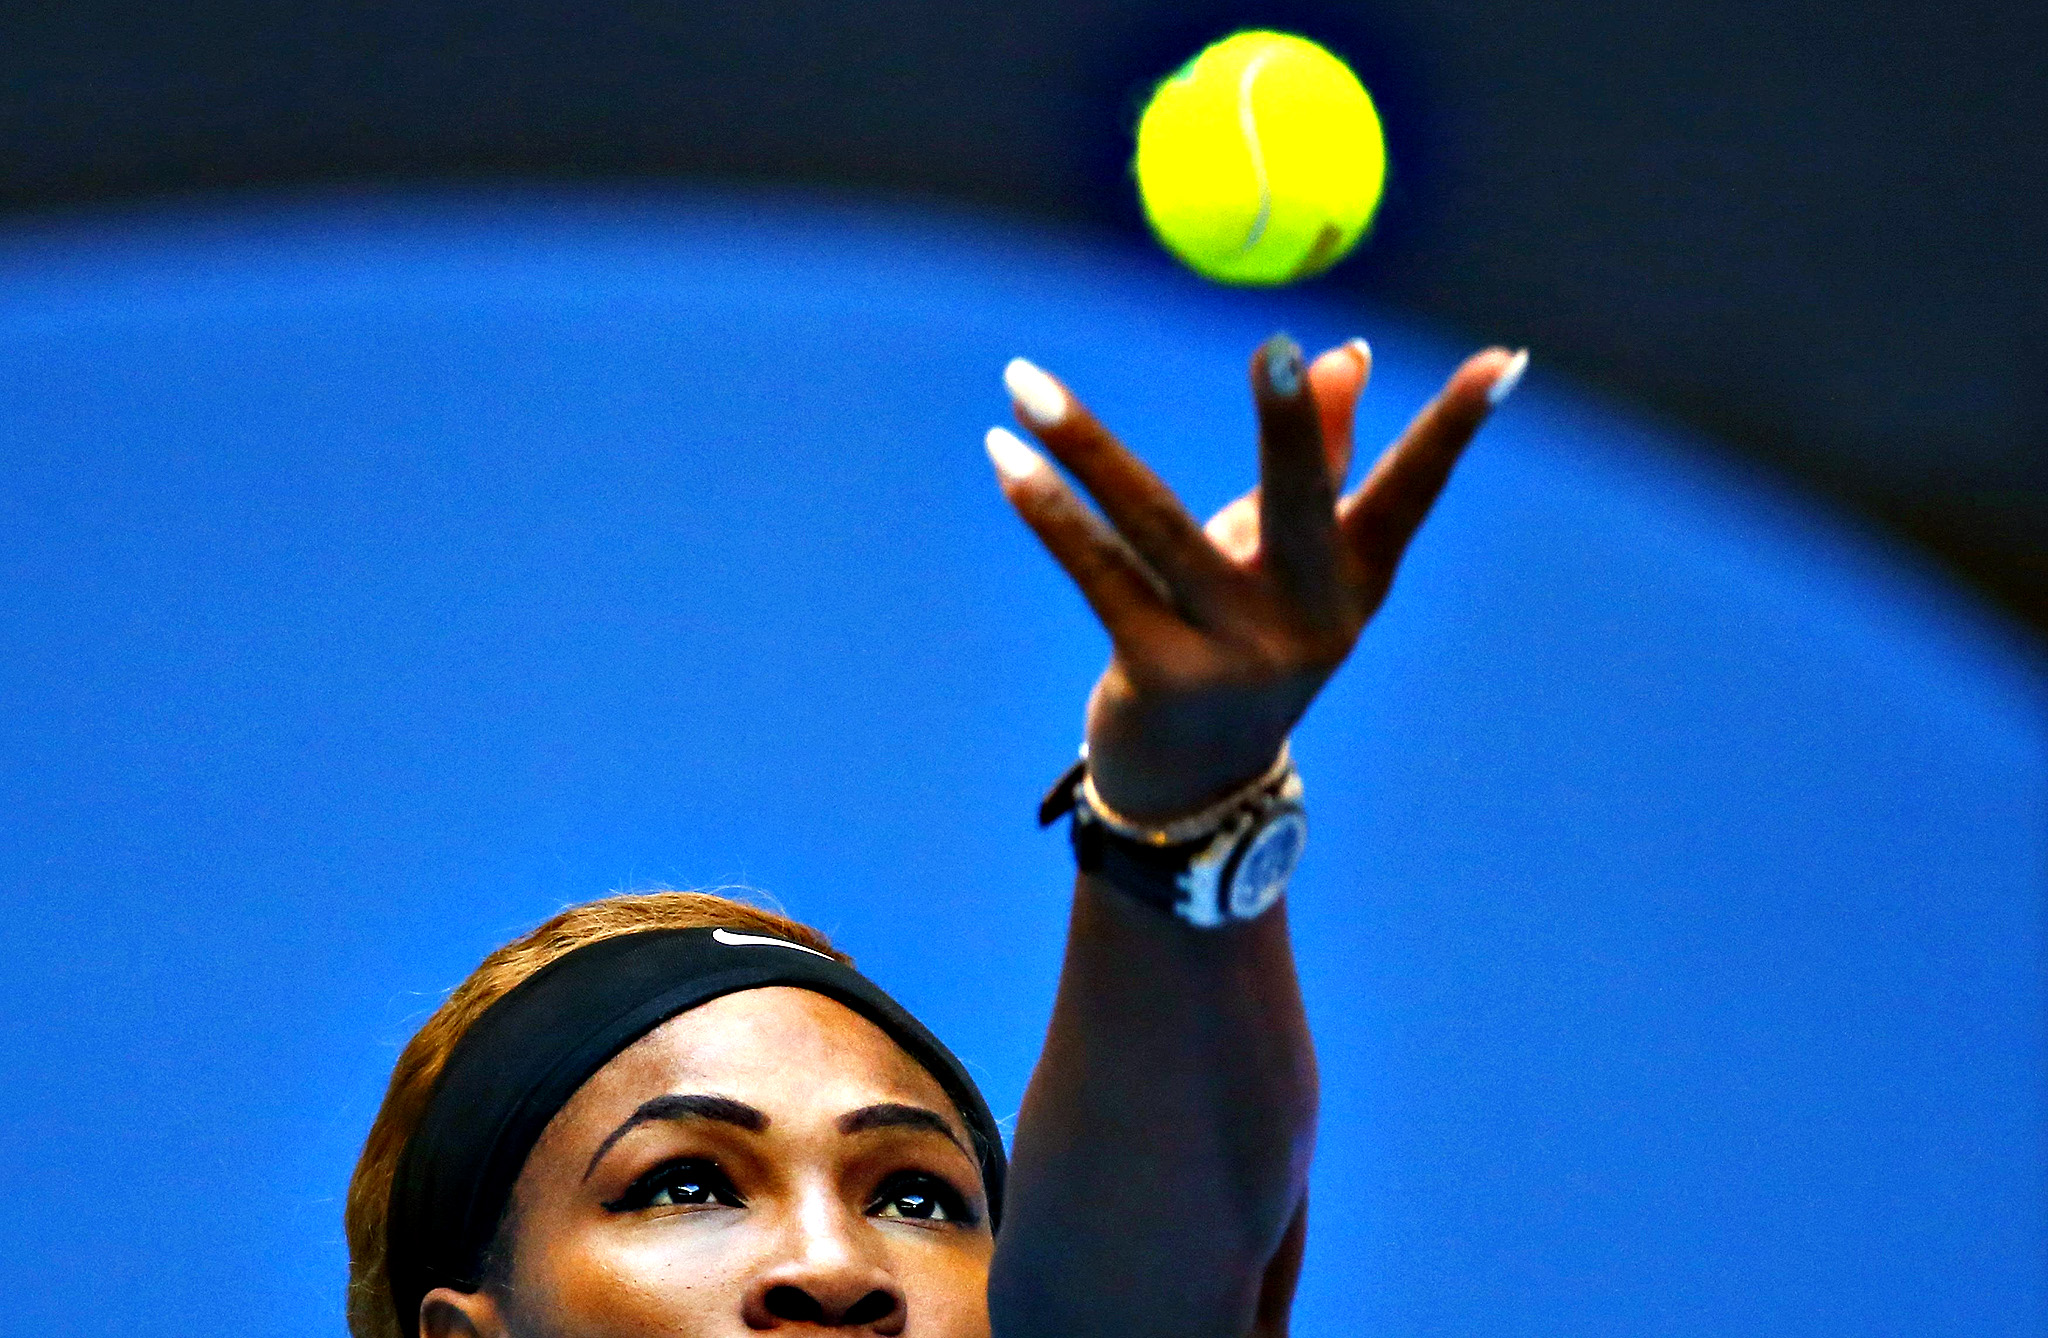 Serena Williams of the U.S. serves during her women's singles match against Silvia Soler-Espinosa of Spain at the China Open tennis tournament in Beijing...Serena Williams of the U.S. serves during her women's singles match against Silvia Soler-Espinosa of Spain at the China Open tennis tournament in Beijing September 29, 2014.